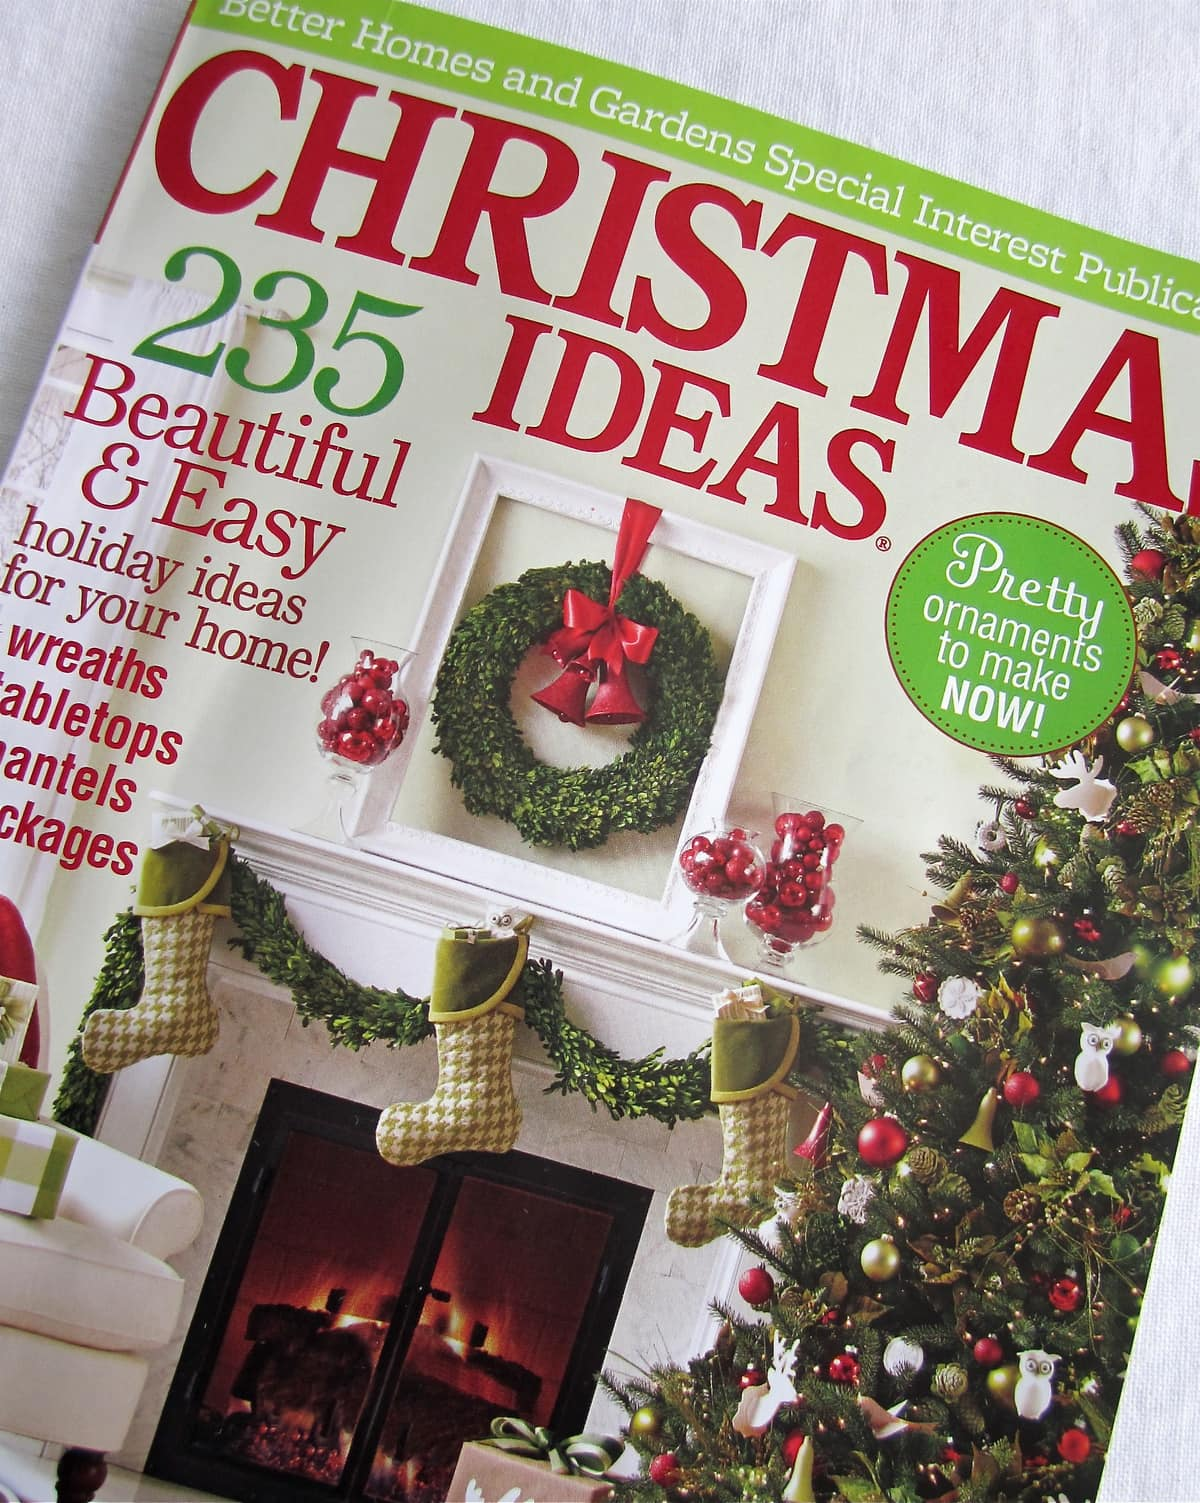 Better homes and gardens christmas decorating ideas - Better Homes And Gardens Christmas Decorating Ideas 37